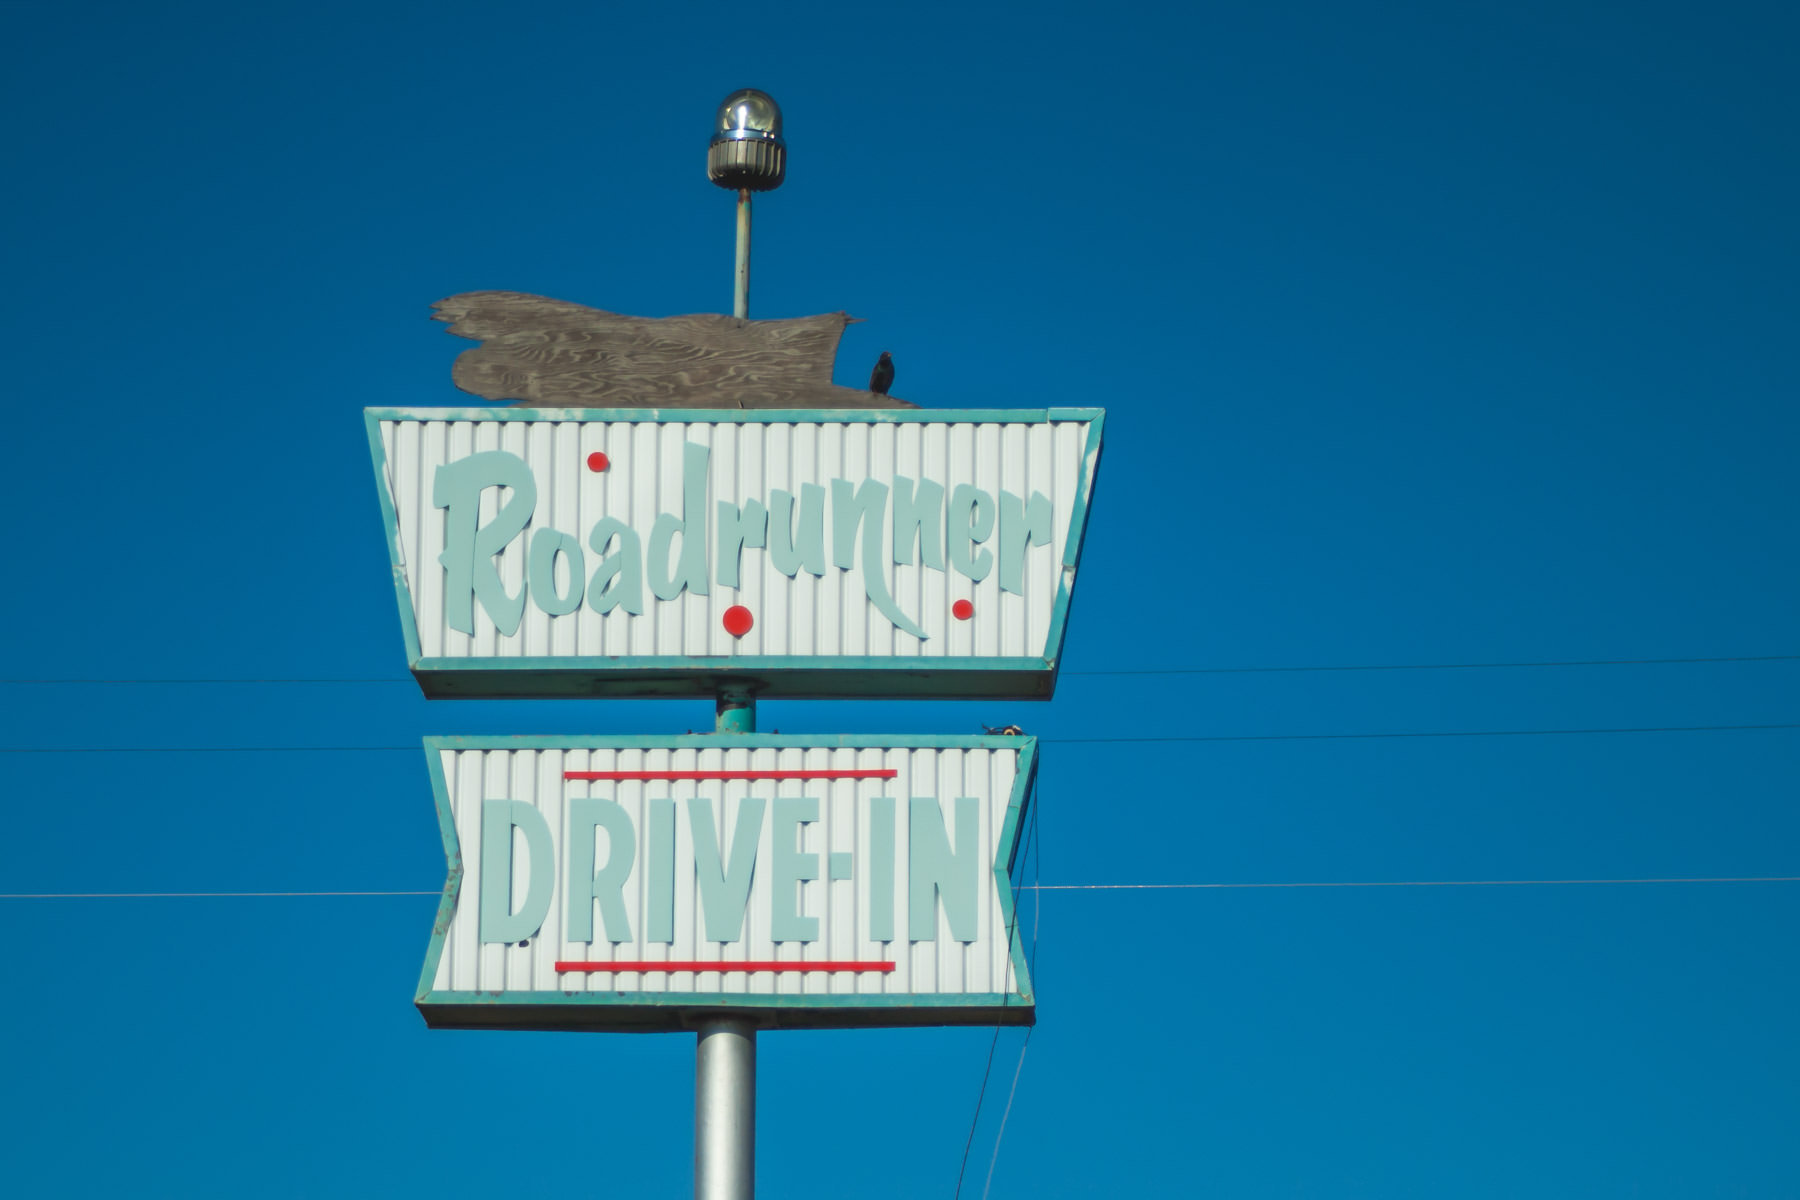 A dilapidated sign for the Roadrunner Drive-In spotted in Tucumcari, New Mexico.